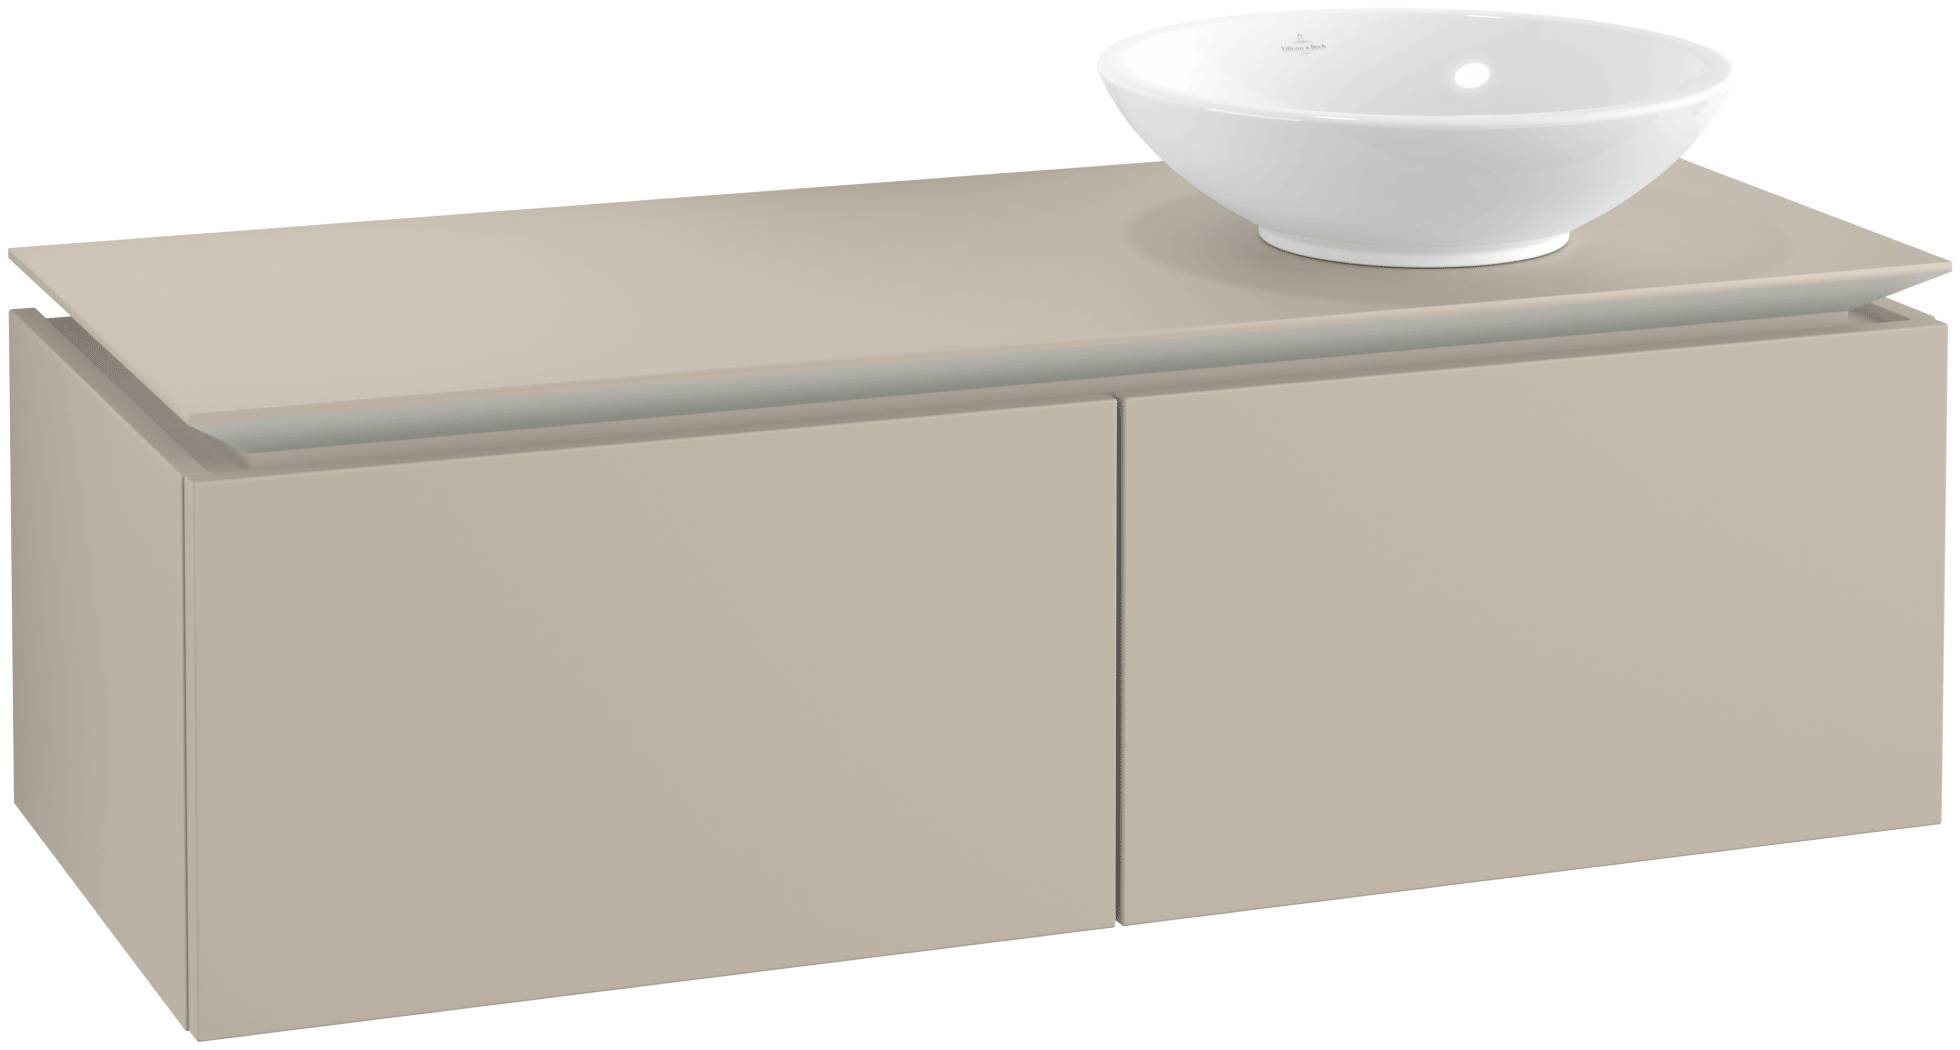 Villeroy & Boch Villeroy & Boch Legato - Meuble sous lavabo with 2 drawers & 1 cut-out right 1200 x 380 x 500mm soft grey